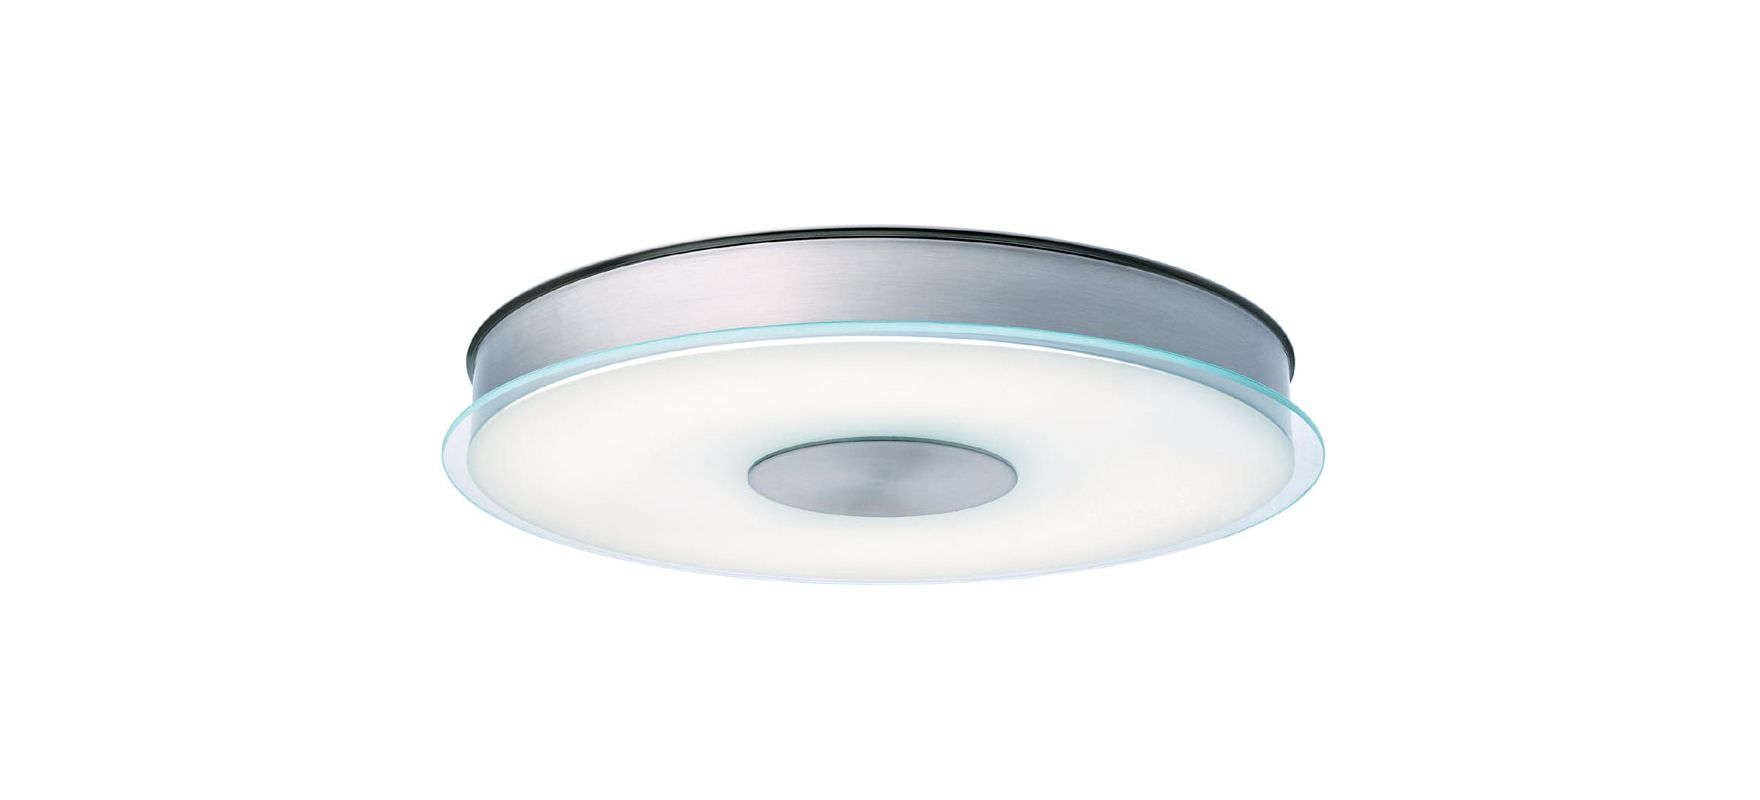 "Lithonia Lighting 11560 Disk 10.5"" ADA Compliant Flush Mount Energy"